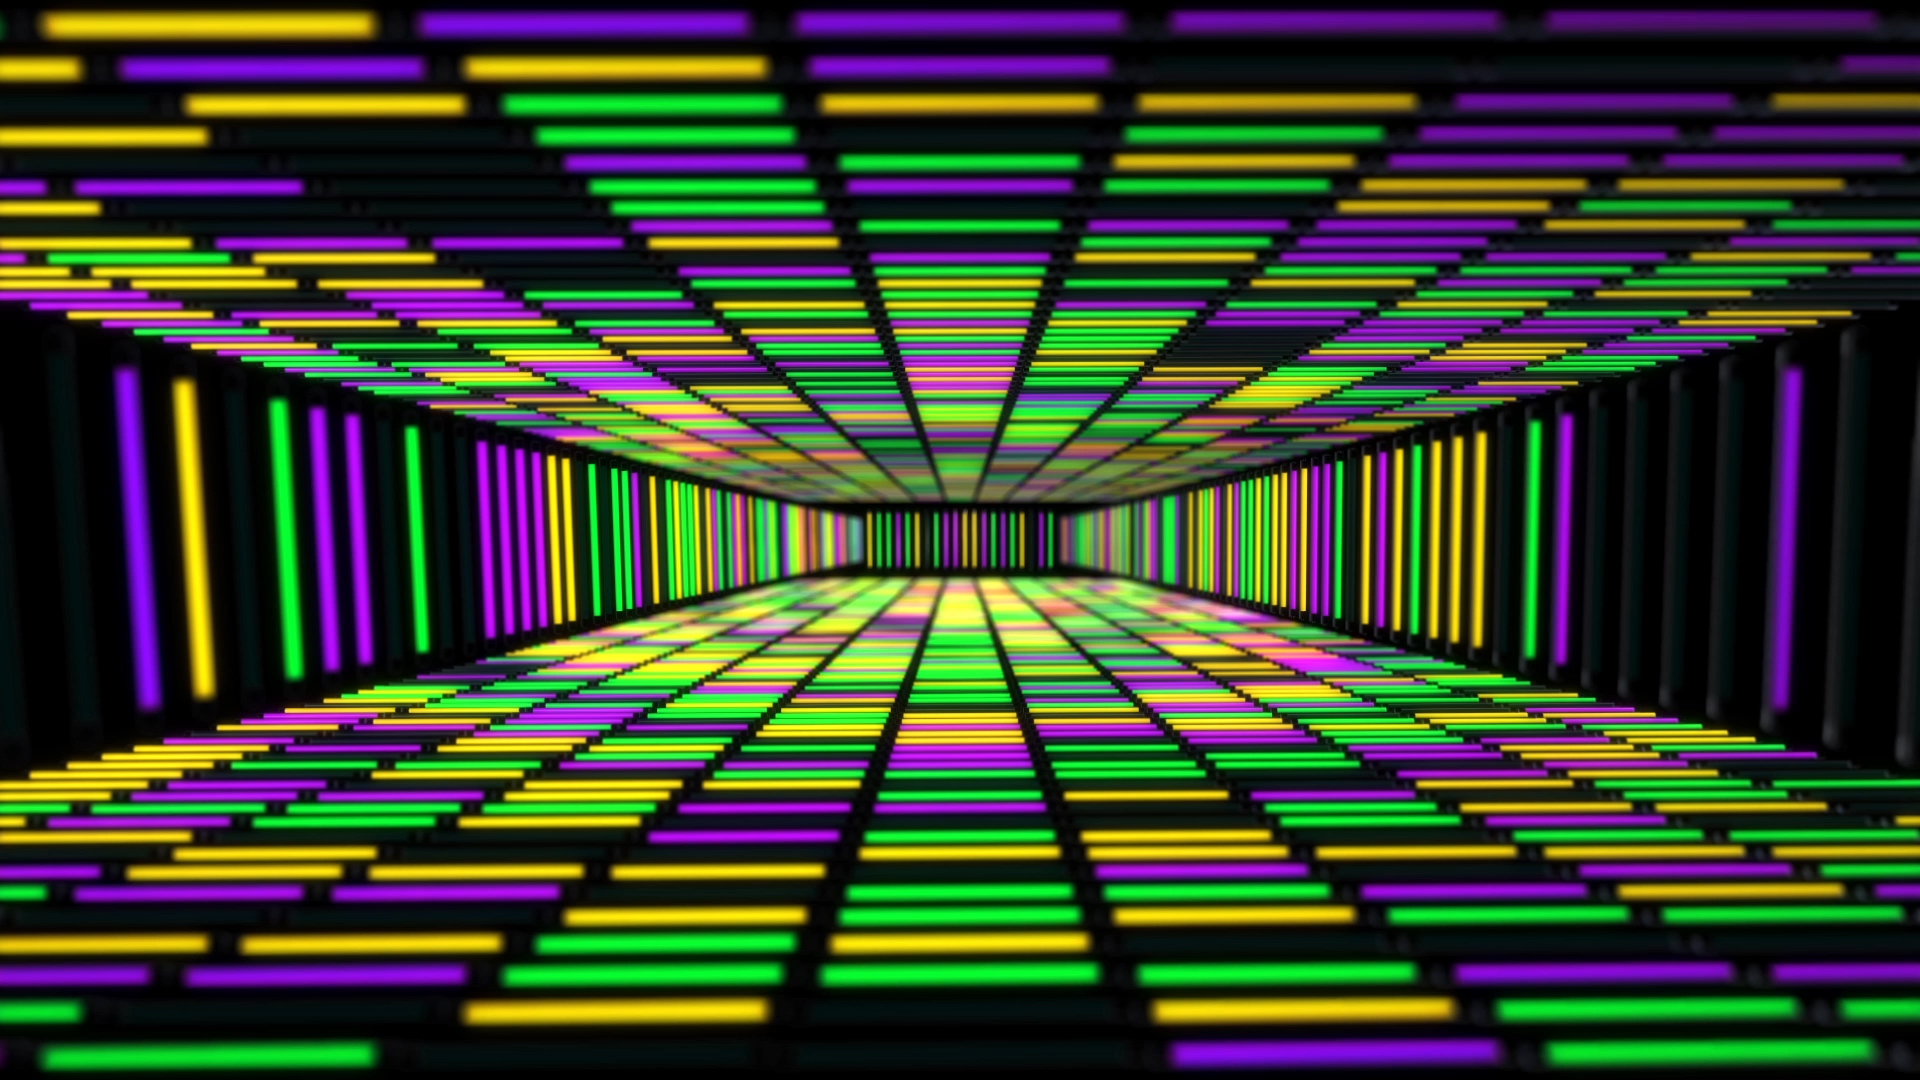 Neon madness ghosteam vj loops video templates for Neon lights for rooms